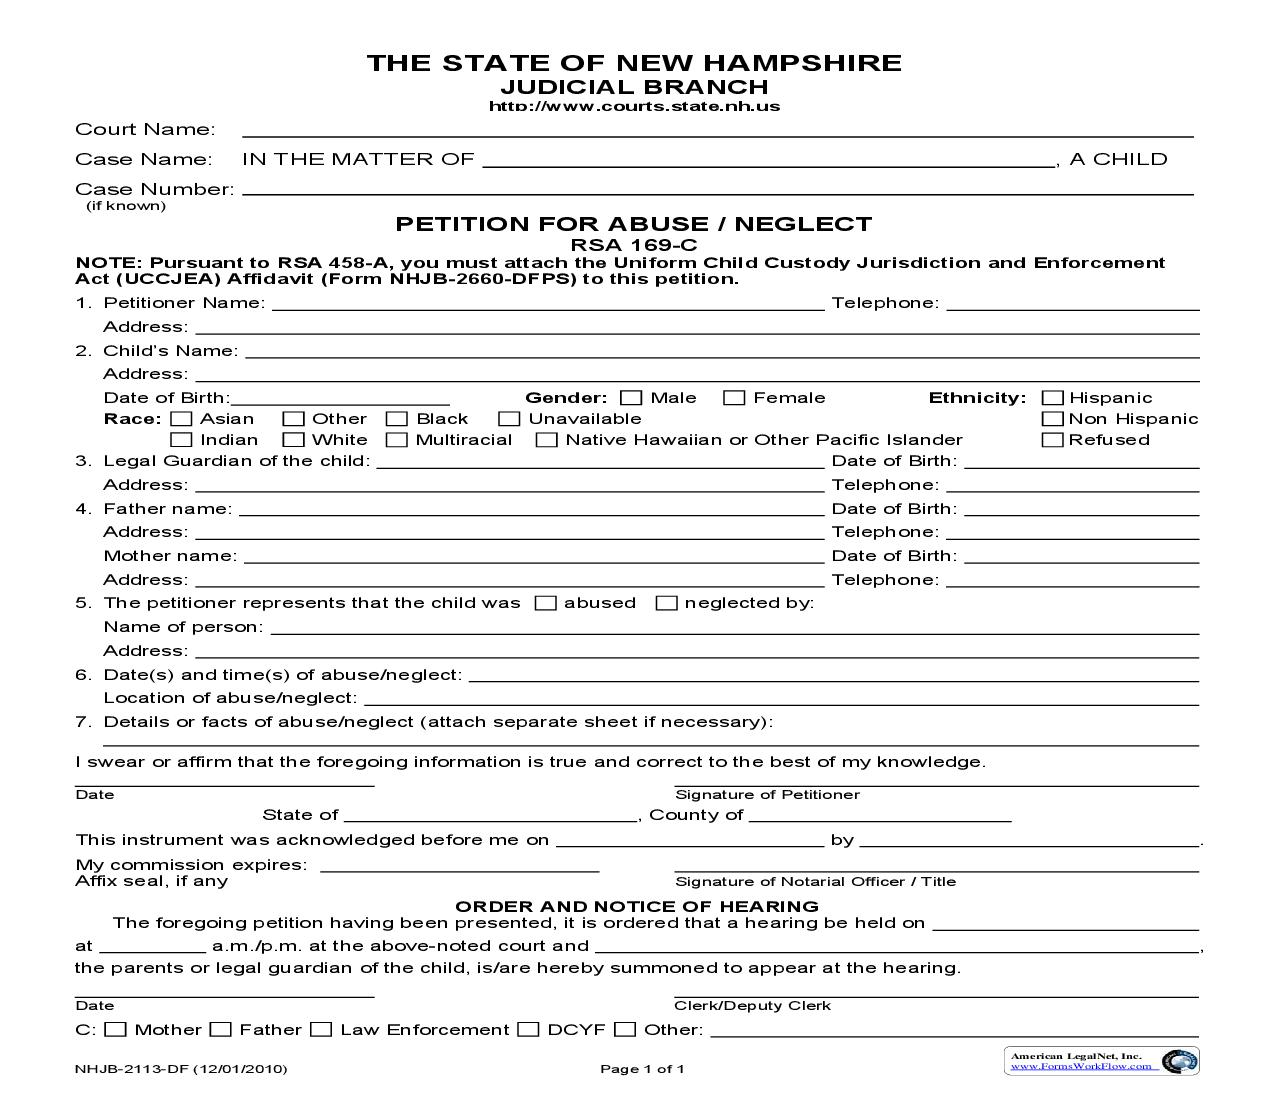 Petition For Abuse Or Neglect {NHJB-2113-DF}   Pdf Fpdf Doc Docx   New Hampshire